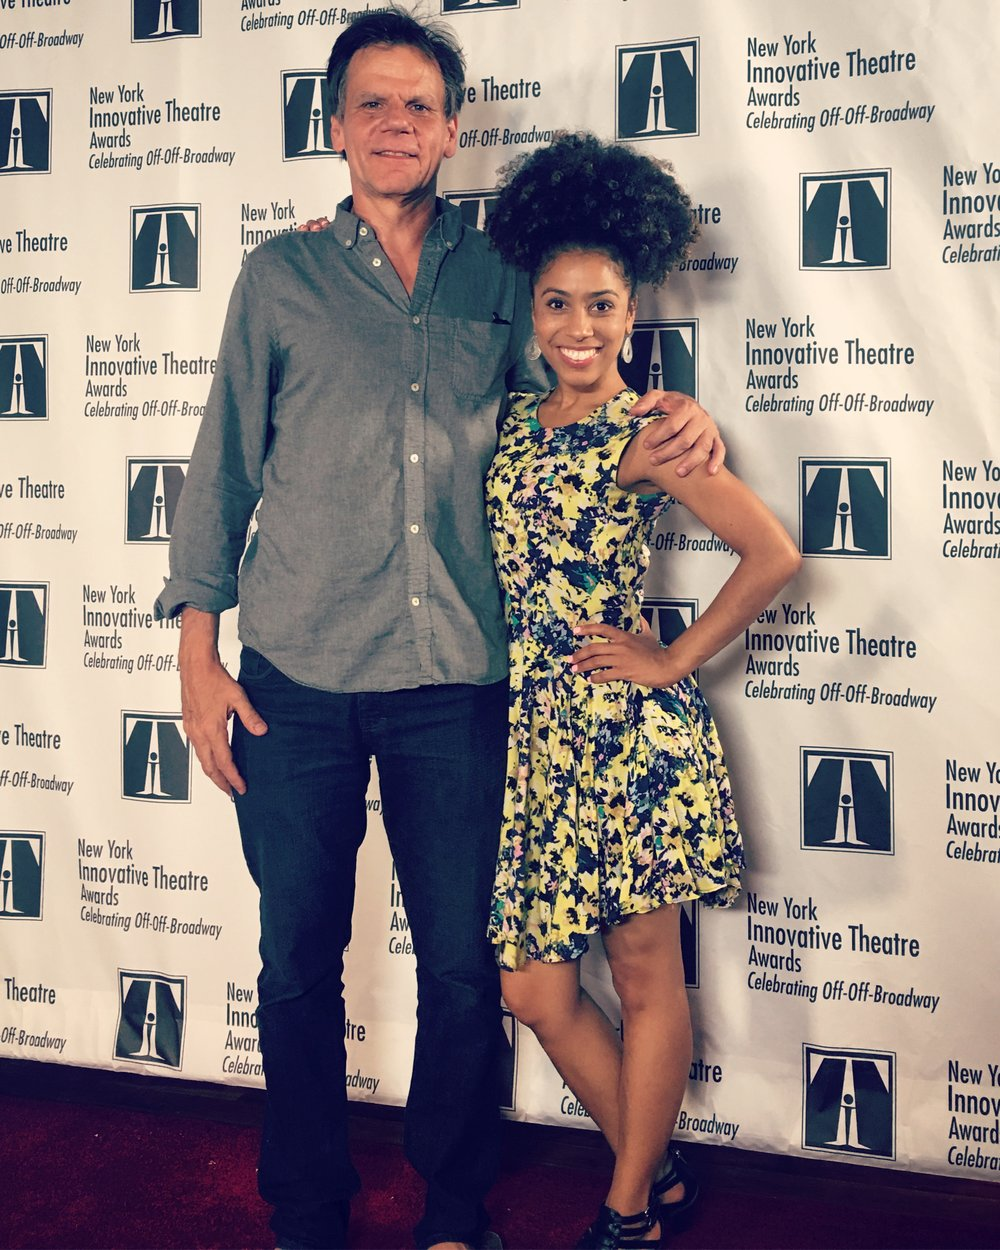 14 New York Innovative Theatre Award nominations - Halle Morse and Peter Jensen, Artistic Director of T. Schreiber Studio & Theatre, at the 2016 New York Innovative Theatre Awards